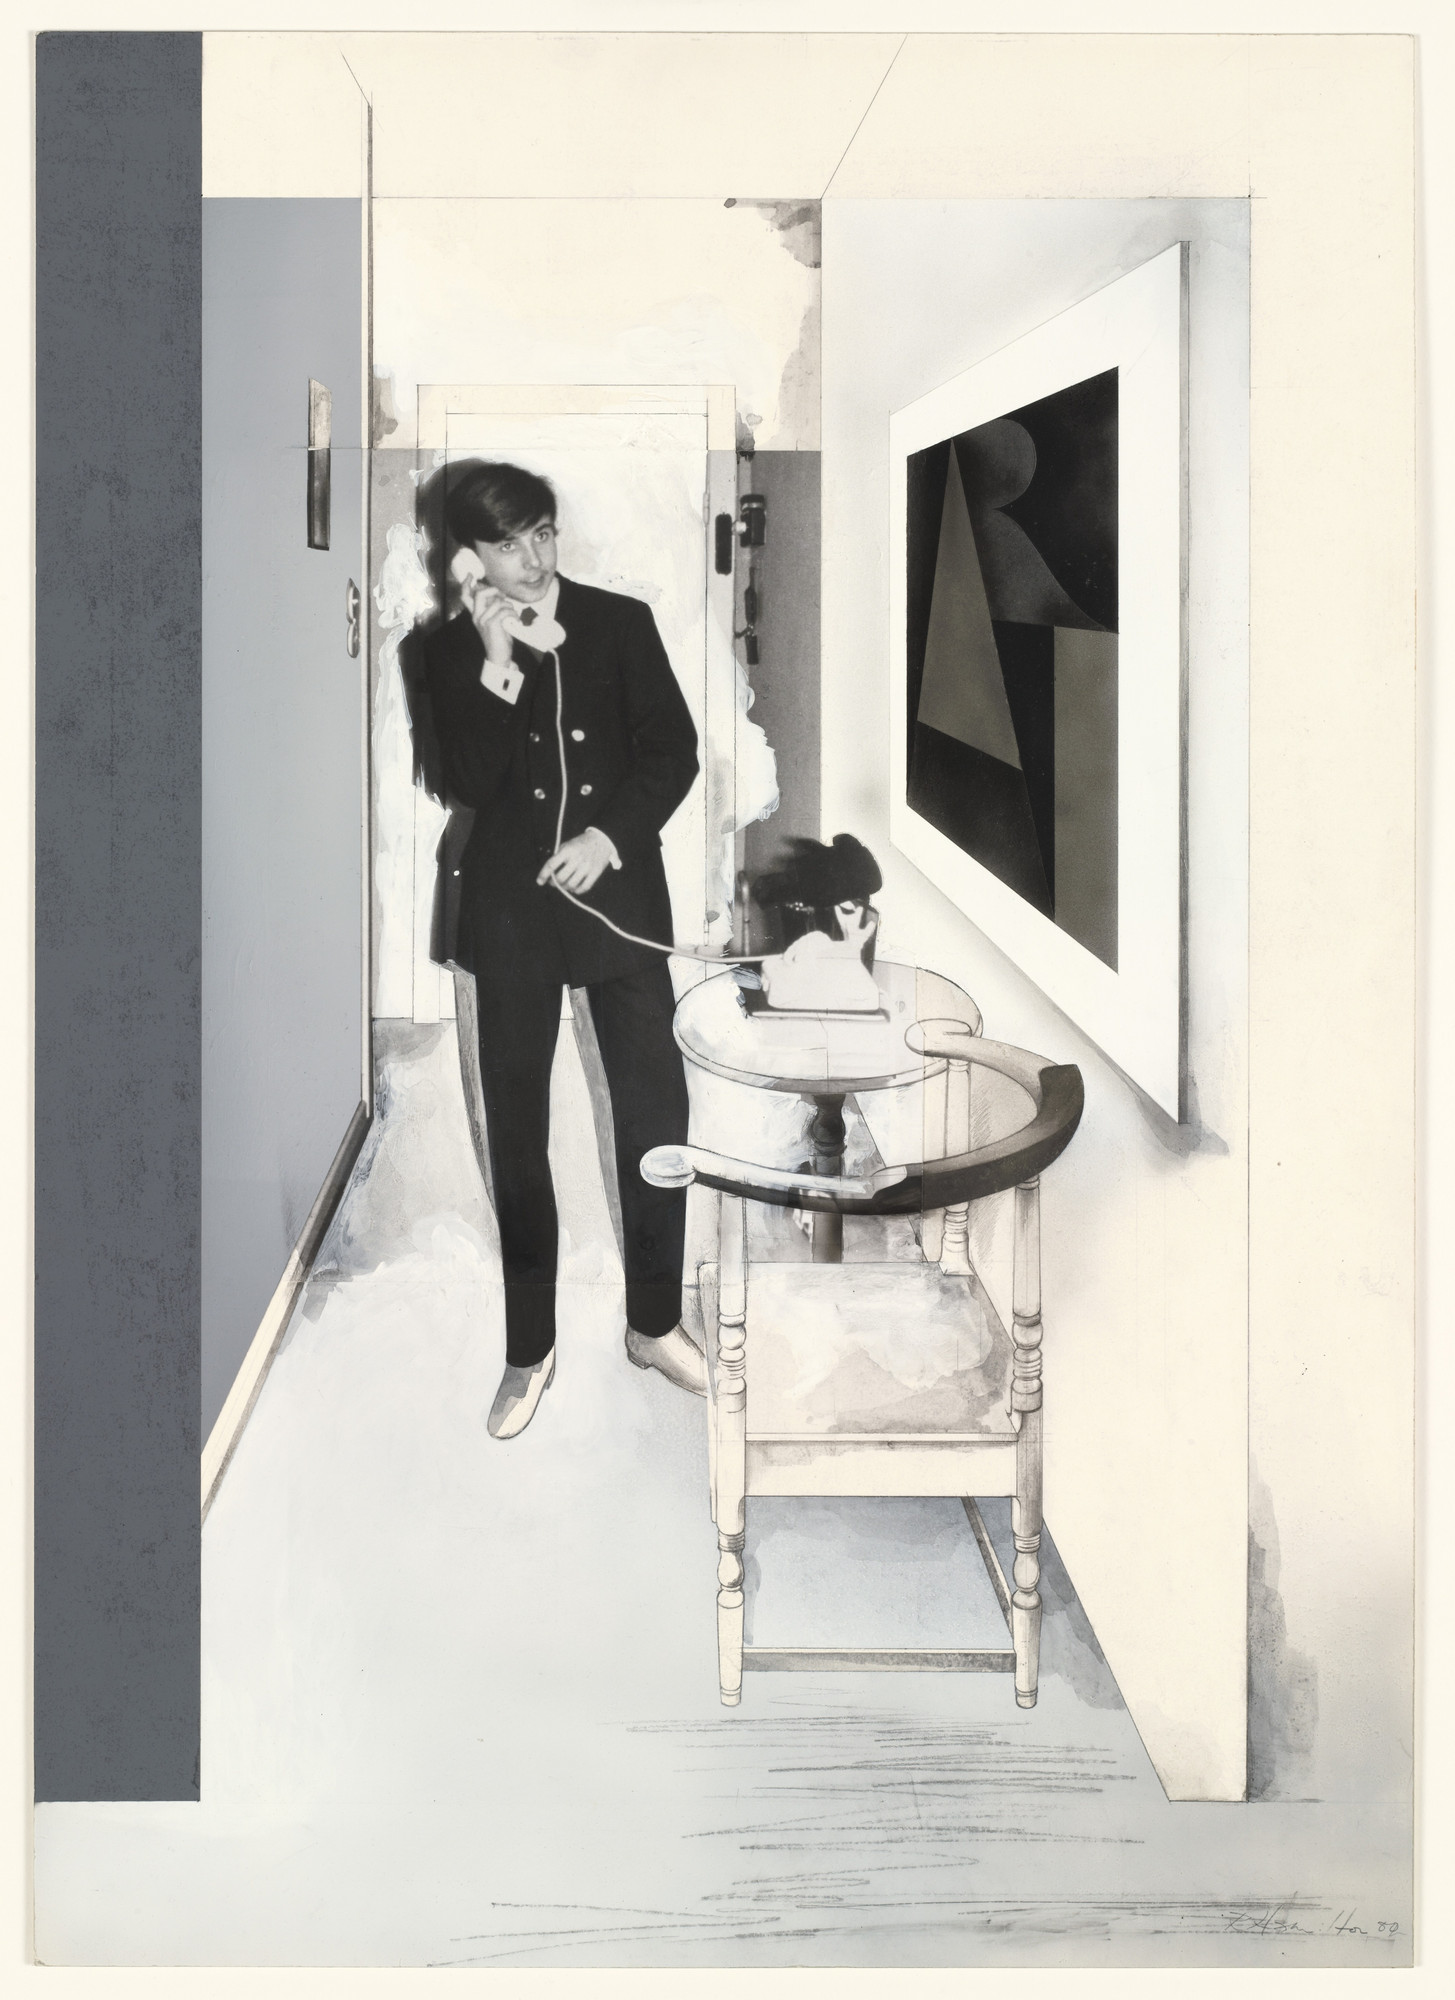 Richard Hamilton. Study for A dedicated follower of fashion. 1980